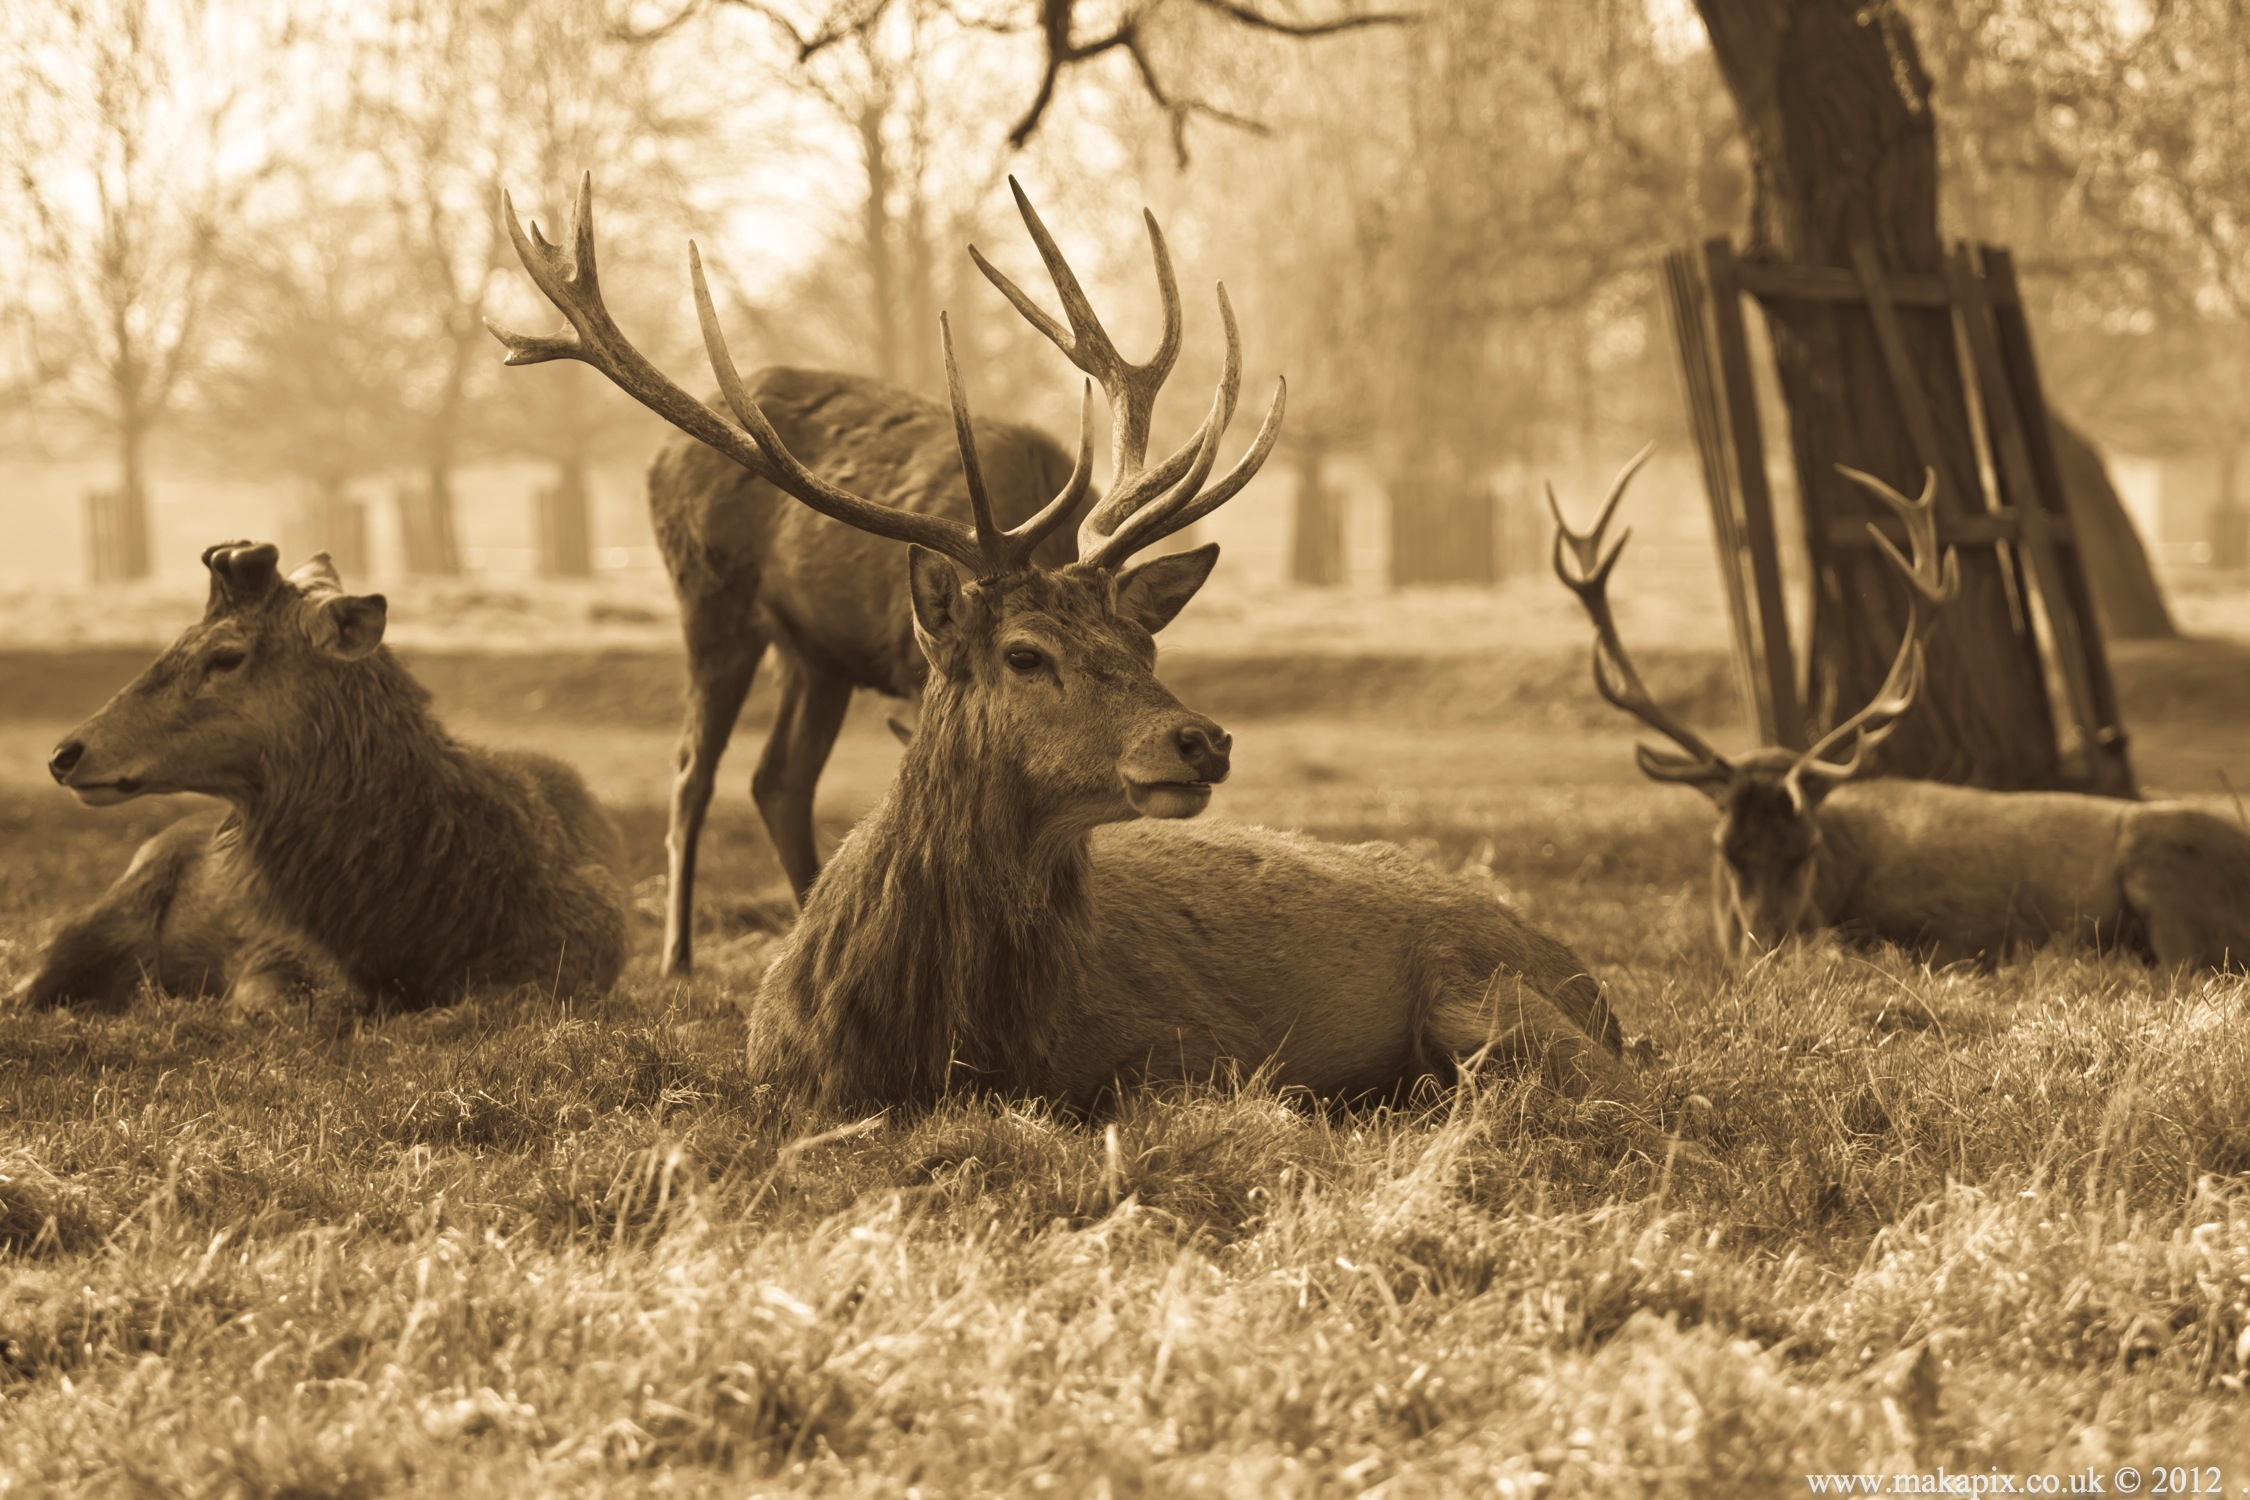 Bushy Park, Teddington